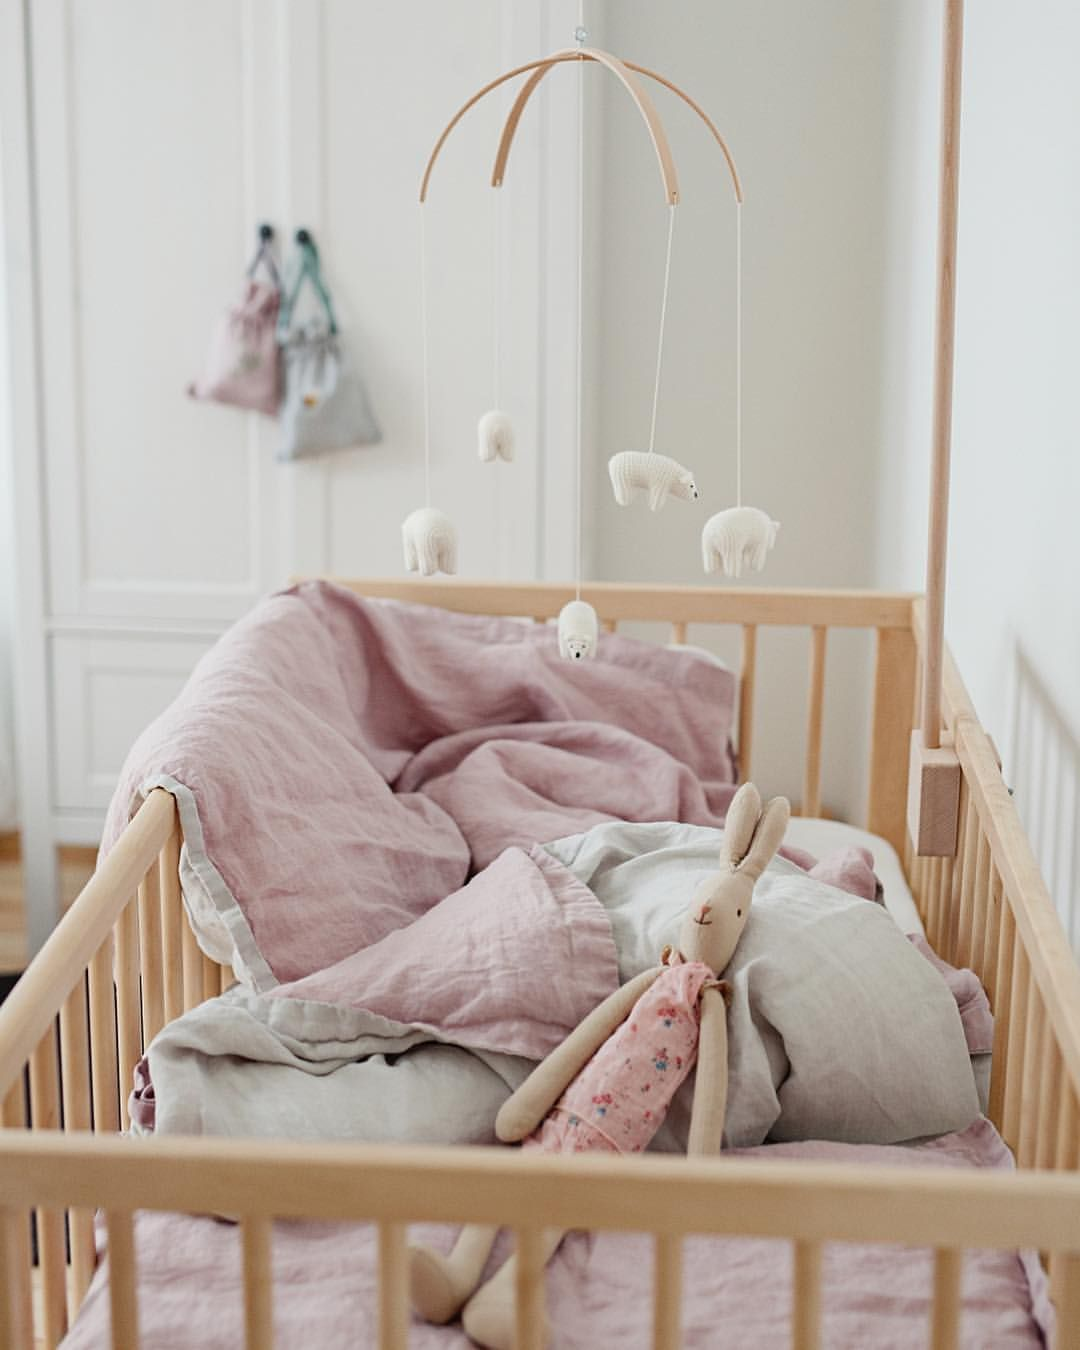 "617 Likes, 3 Comments - La Petite Alice (@lapetitealiceshop) on Instagram: ""Our linen bedding for baby girl now 20% off / Hurry!🐰 #linen #linenbaby #baby #babylinen…"""